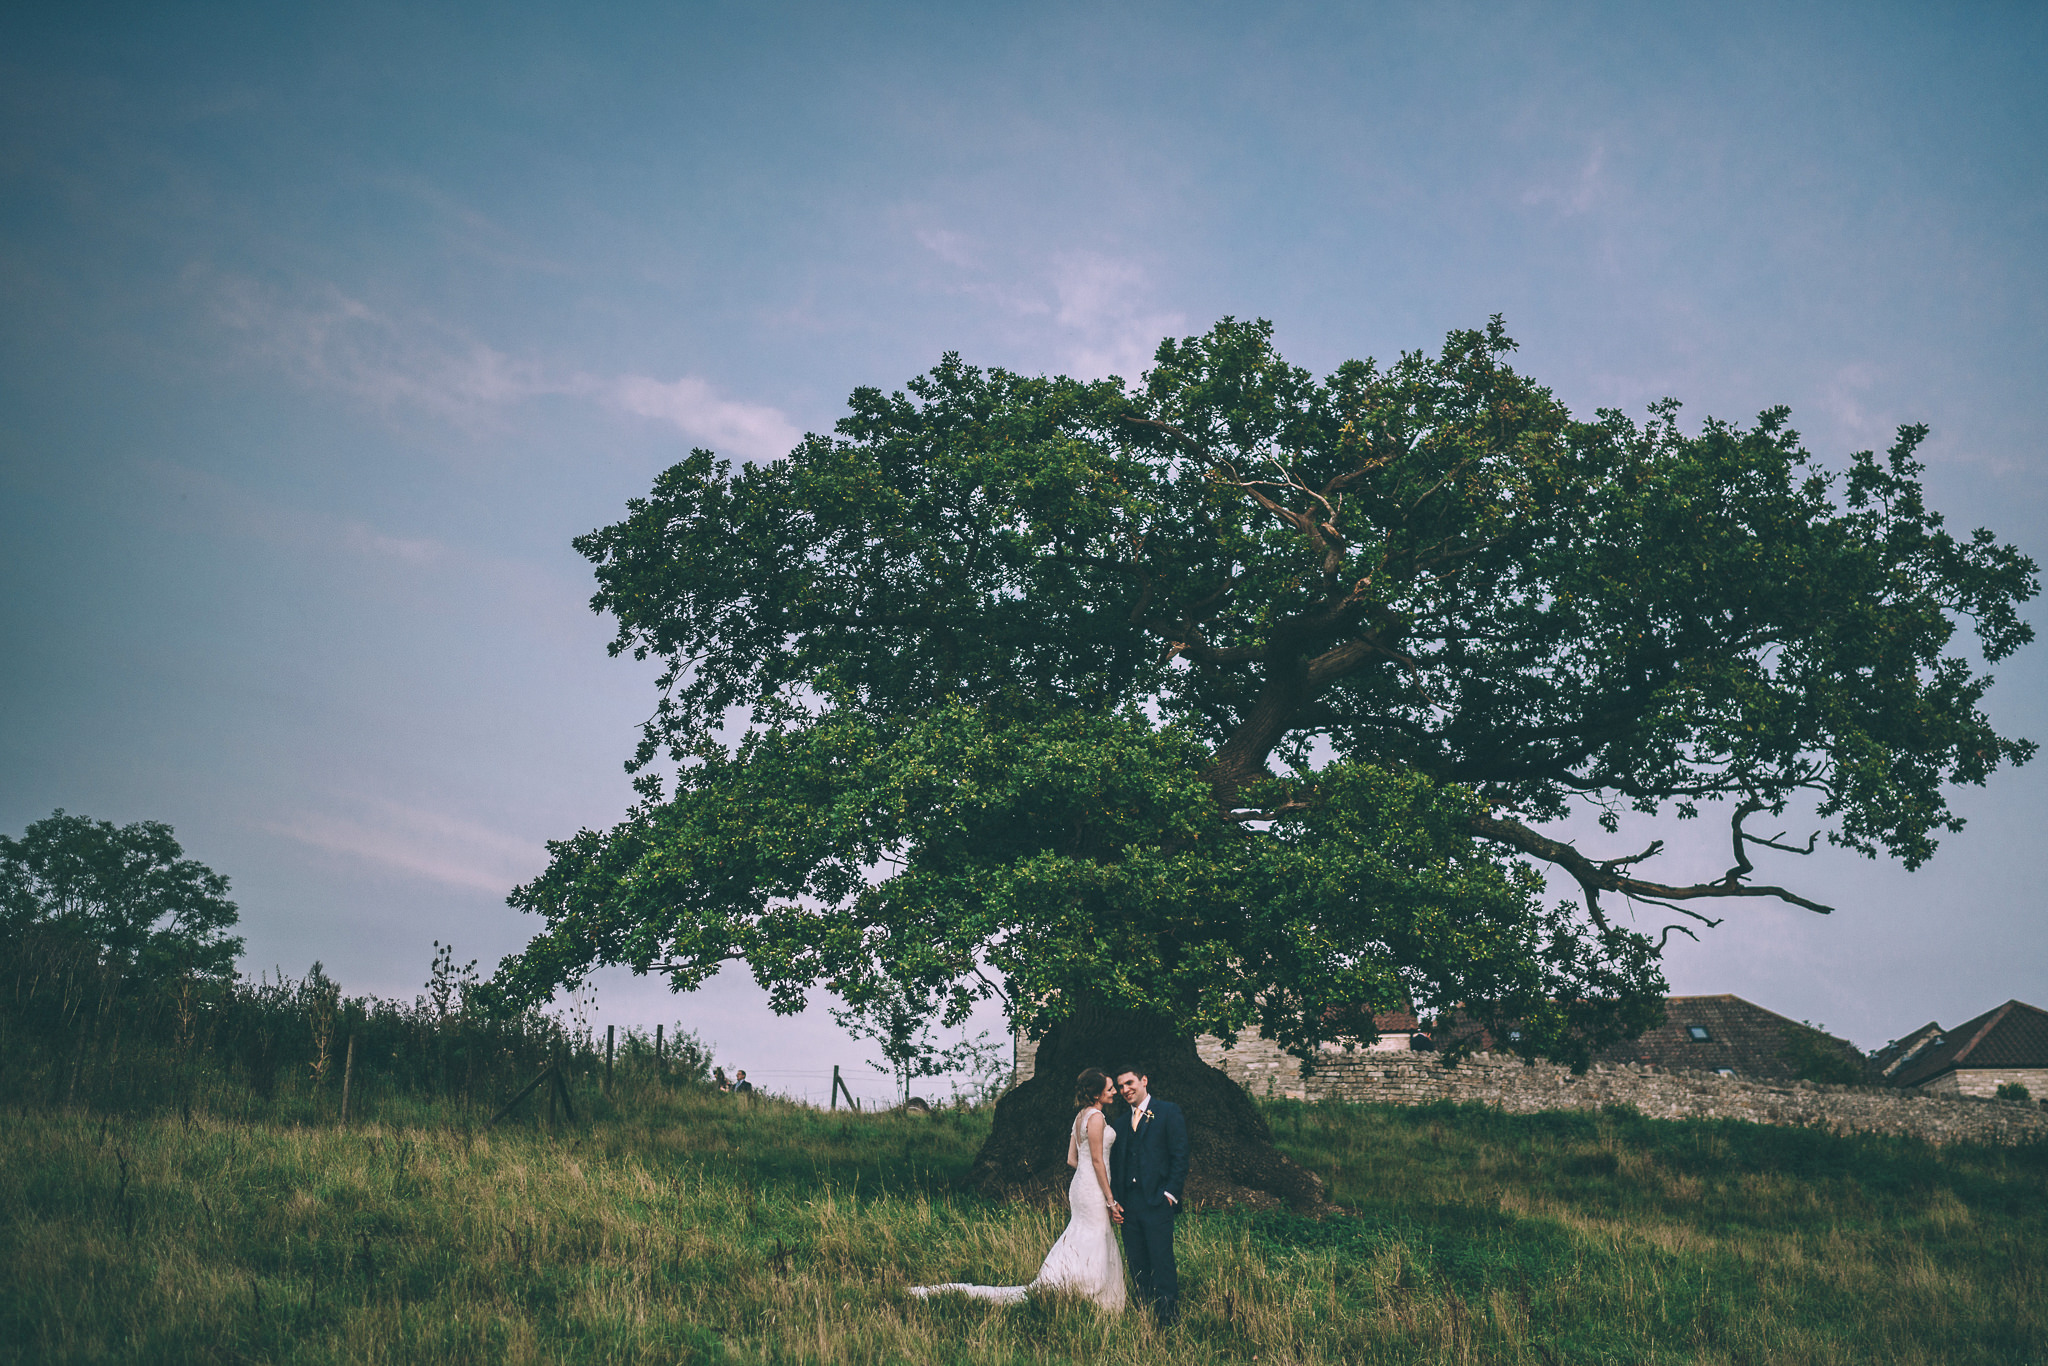 paul-marbrook-best-wedding-photographer-north-wales-106115